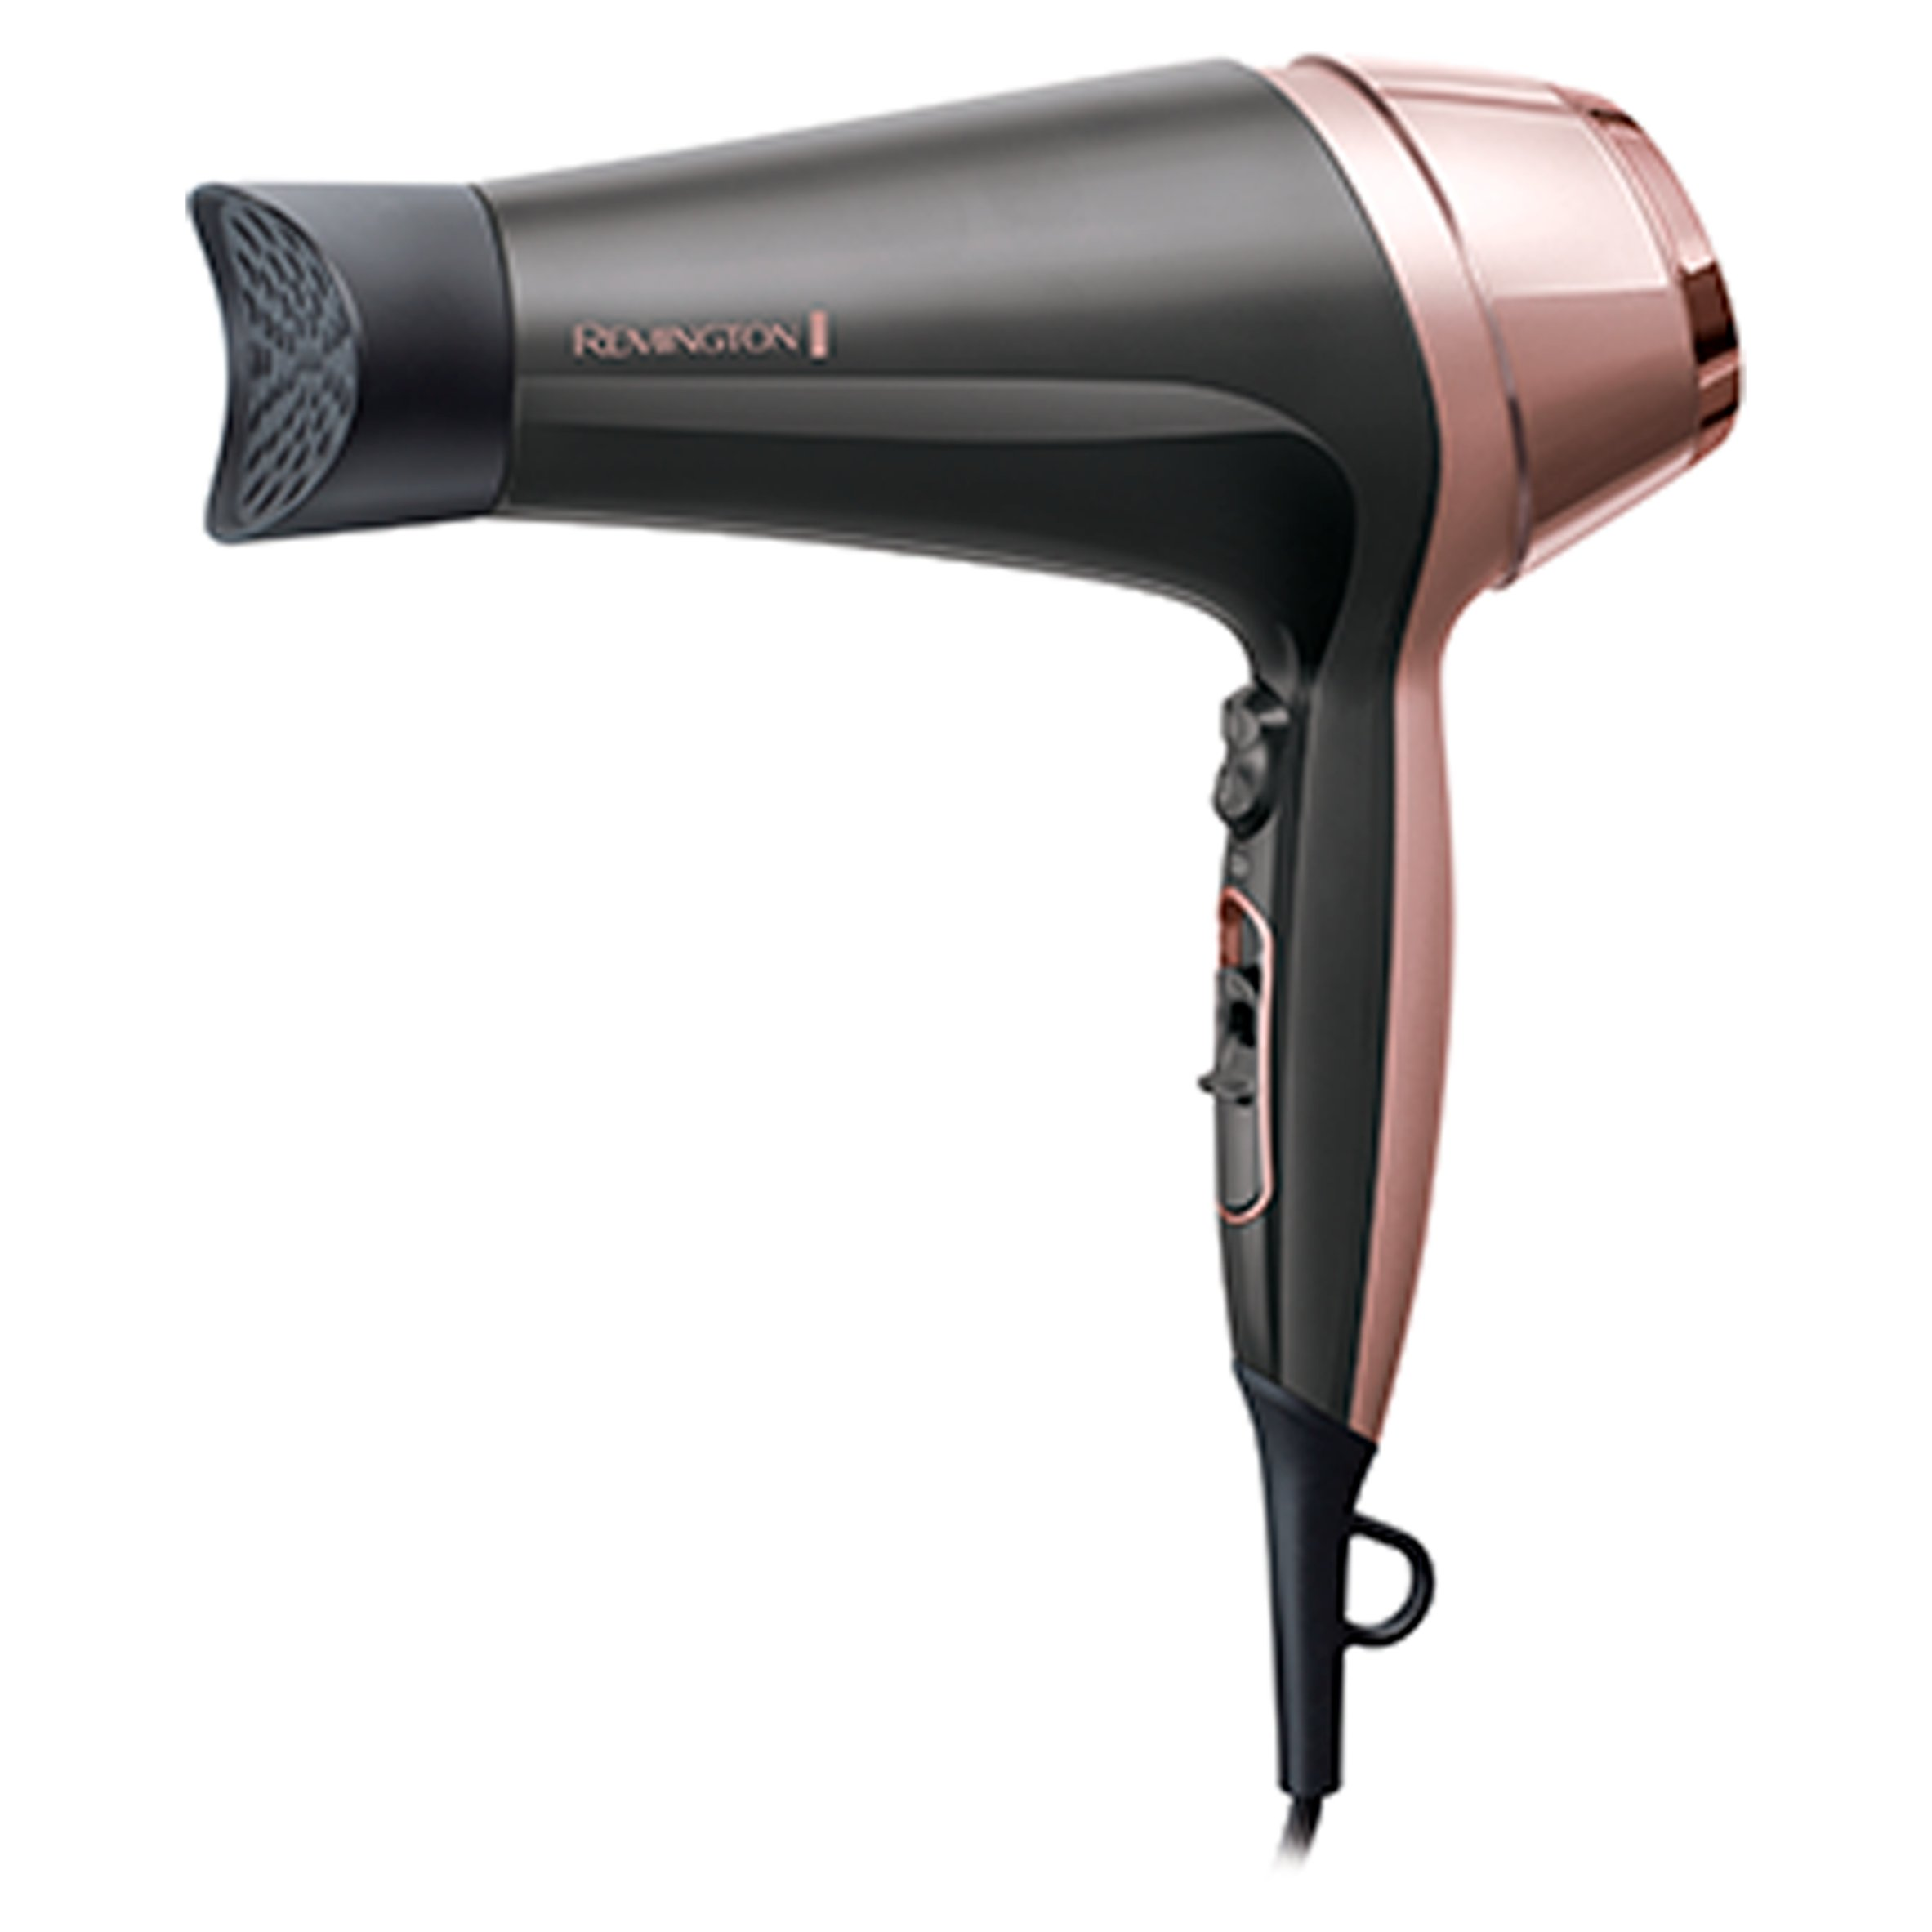 Remington Curl And Straight Hairdryer